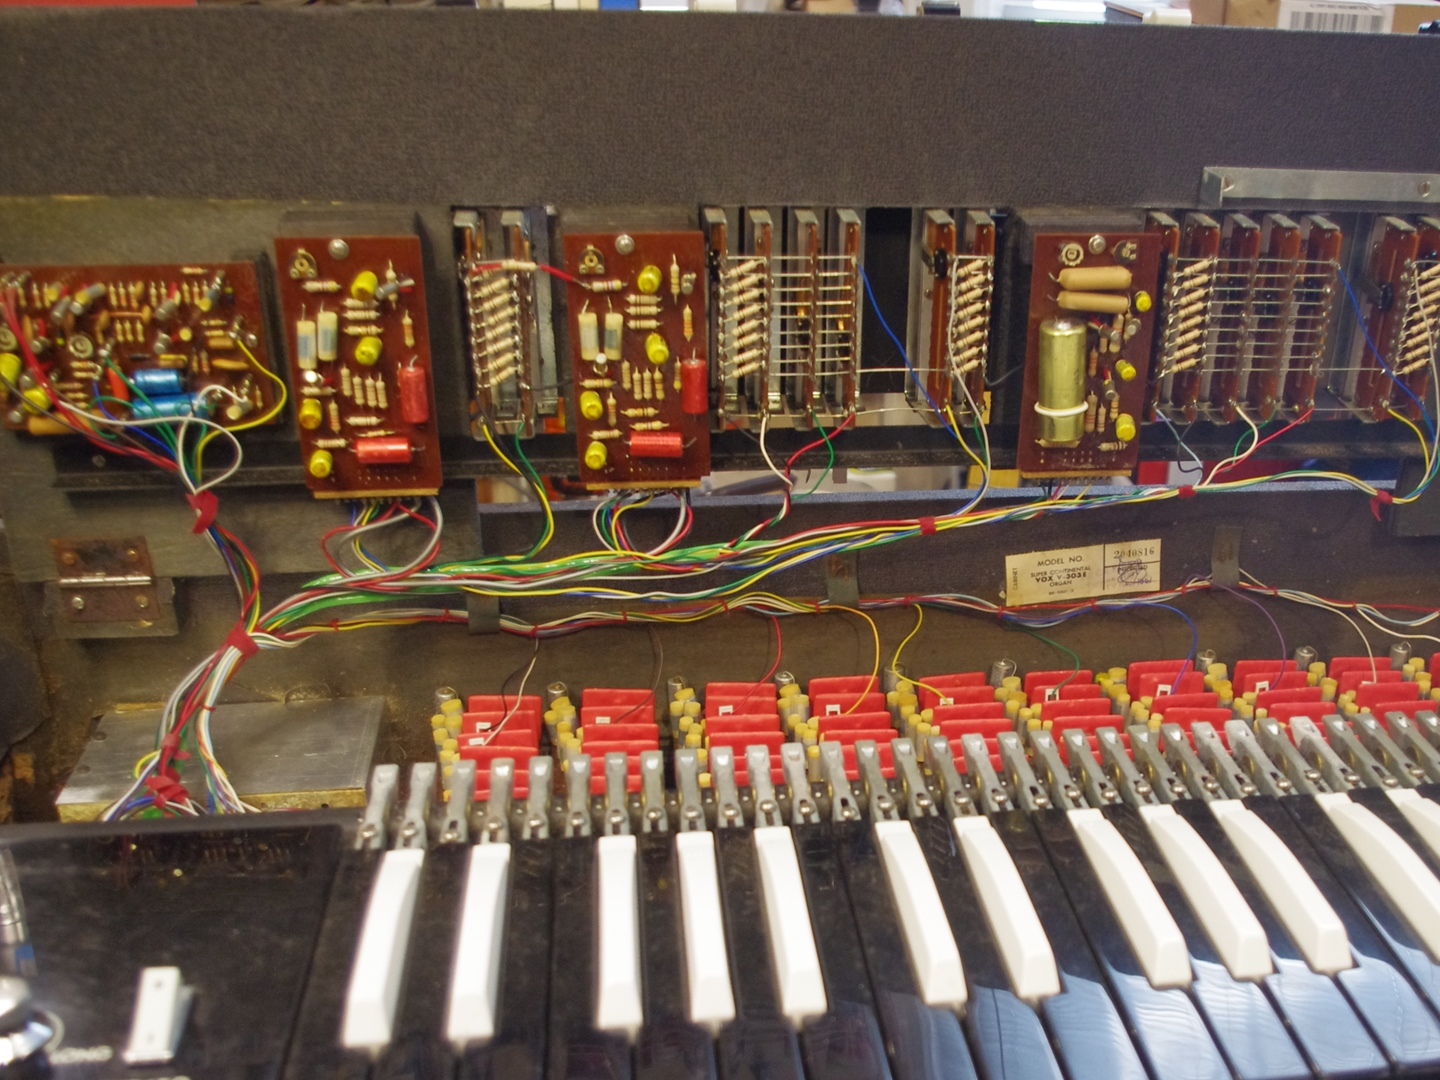 Vox Super Continental Organ inside guts repaired